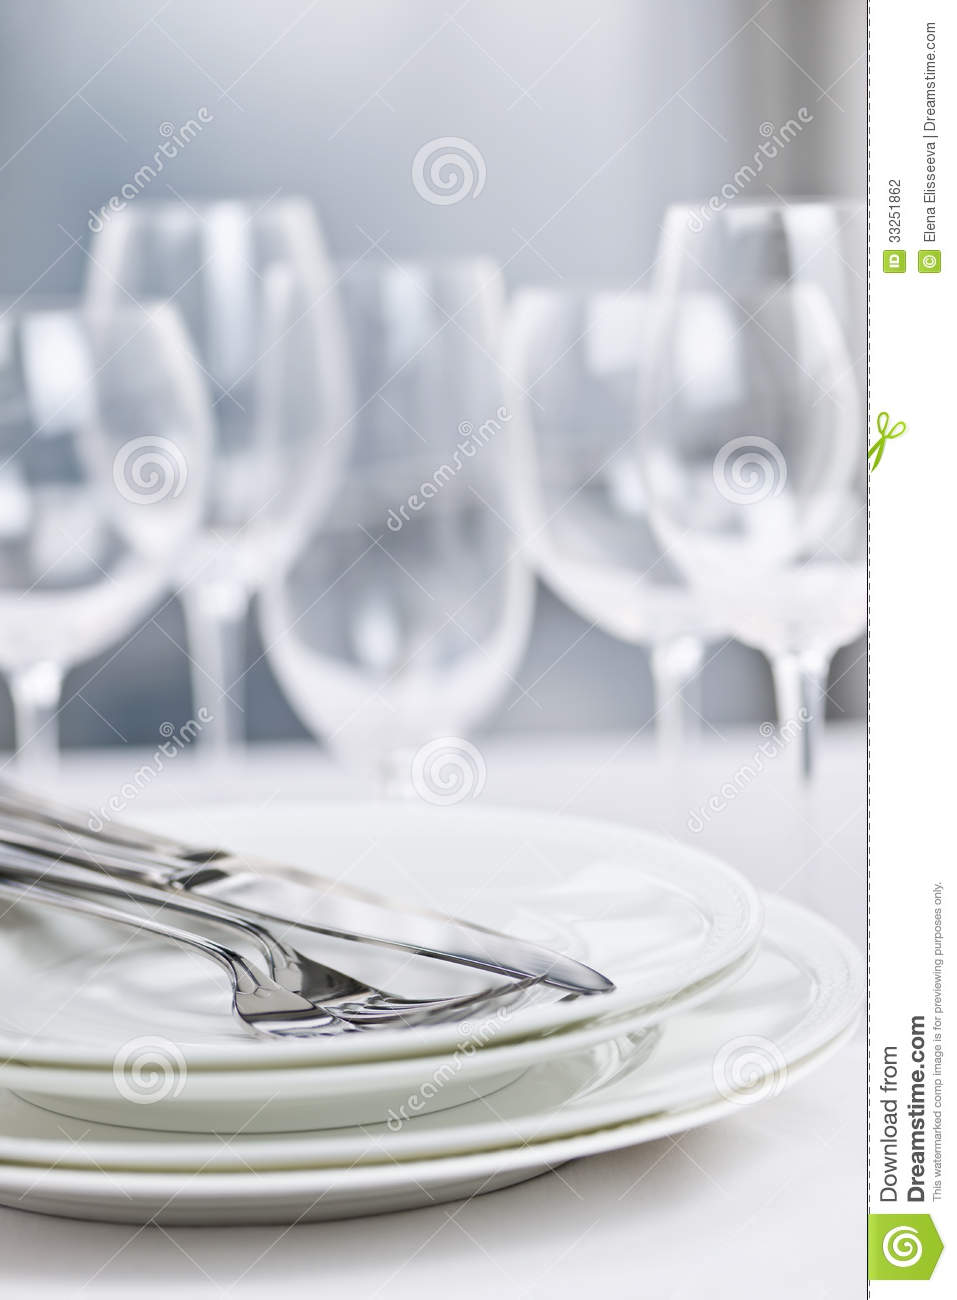 Plates And Cutlery Stock Photography Image 33251862